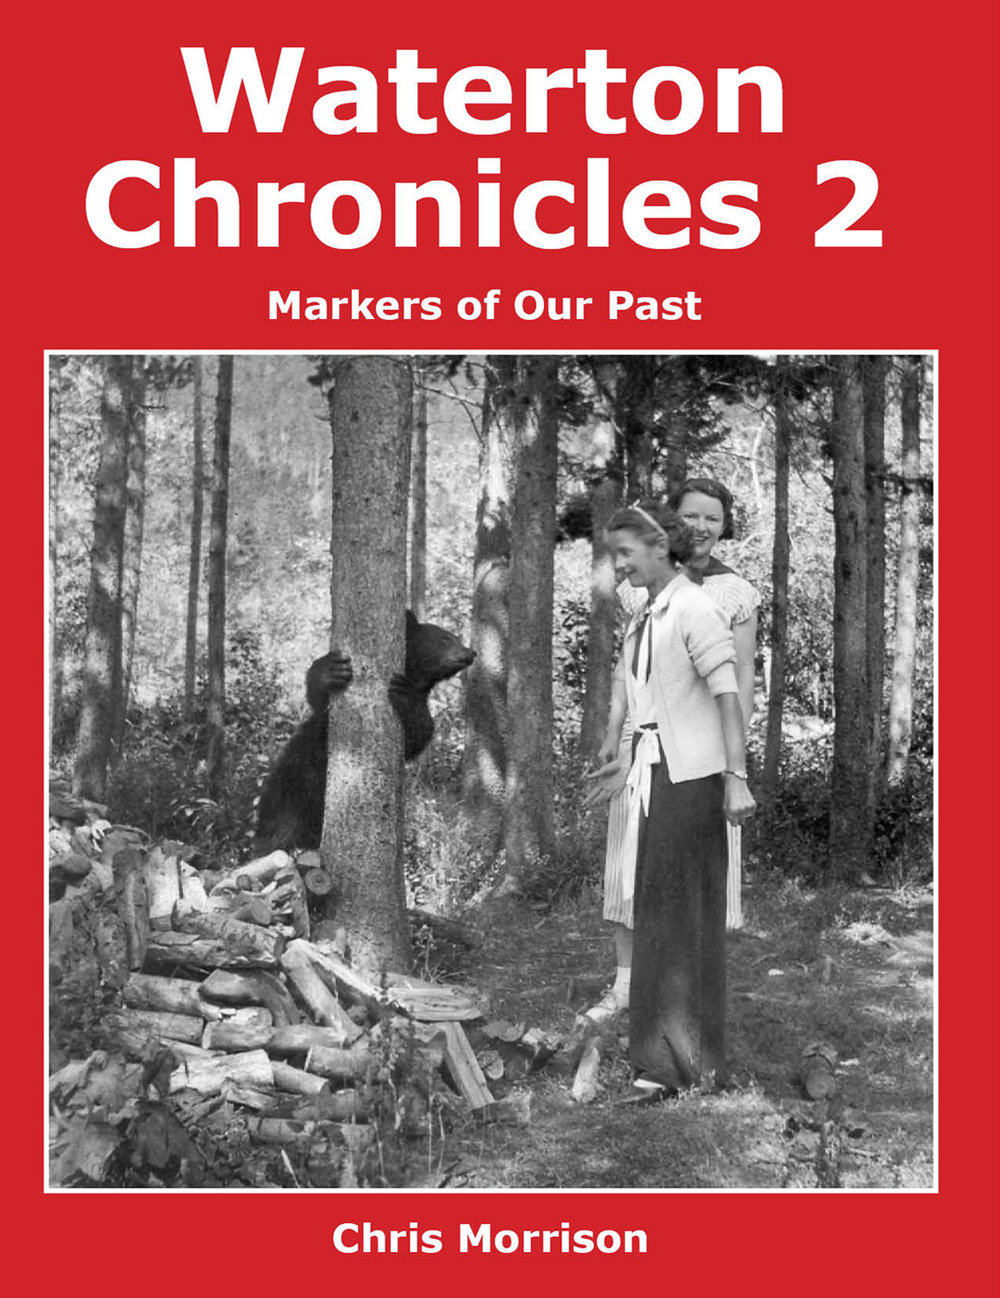 The cover of  Waterton Chronicles 2: Markers of Our Pastm  which features a picture of two ladies near a small bear.